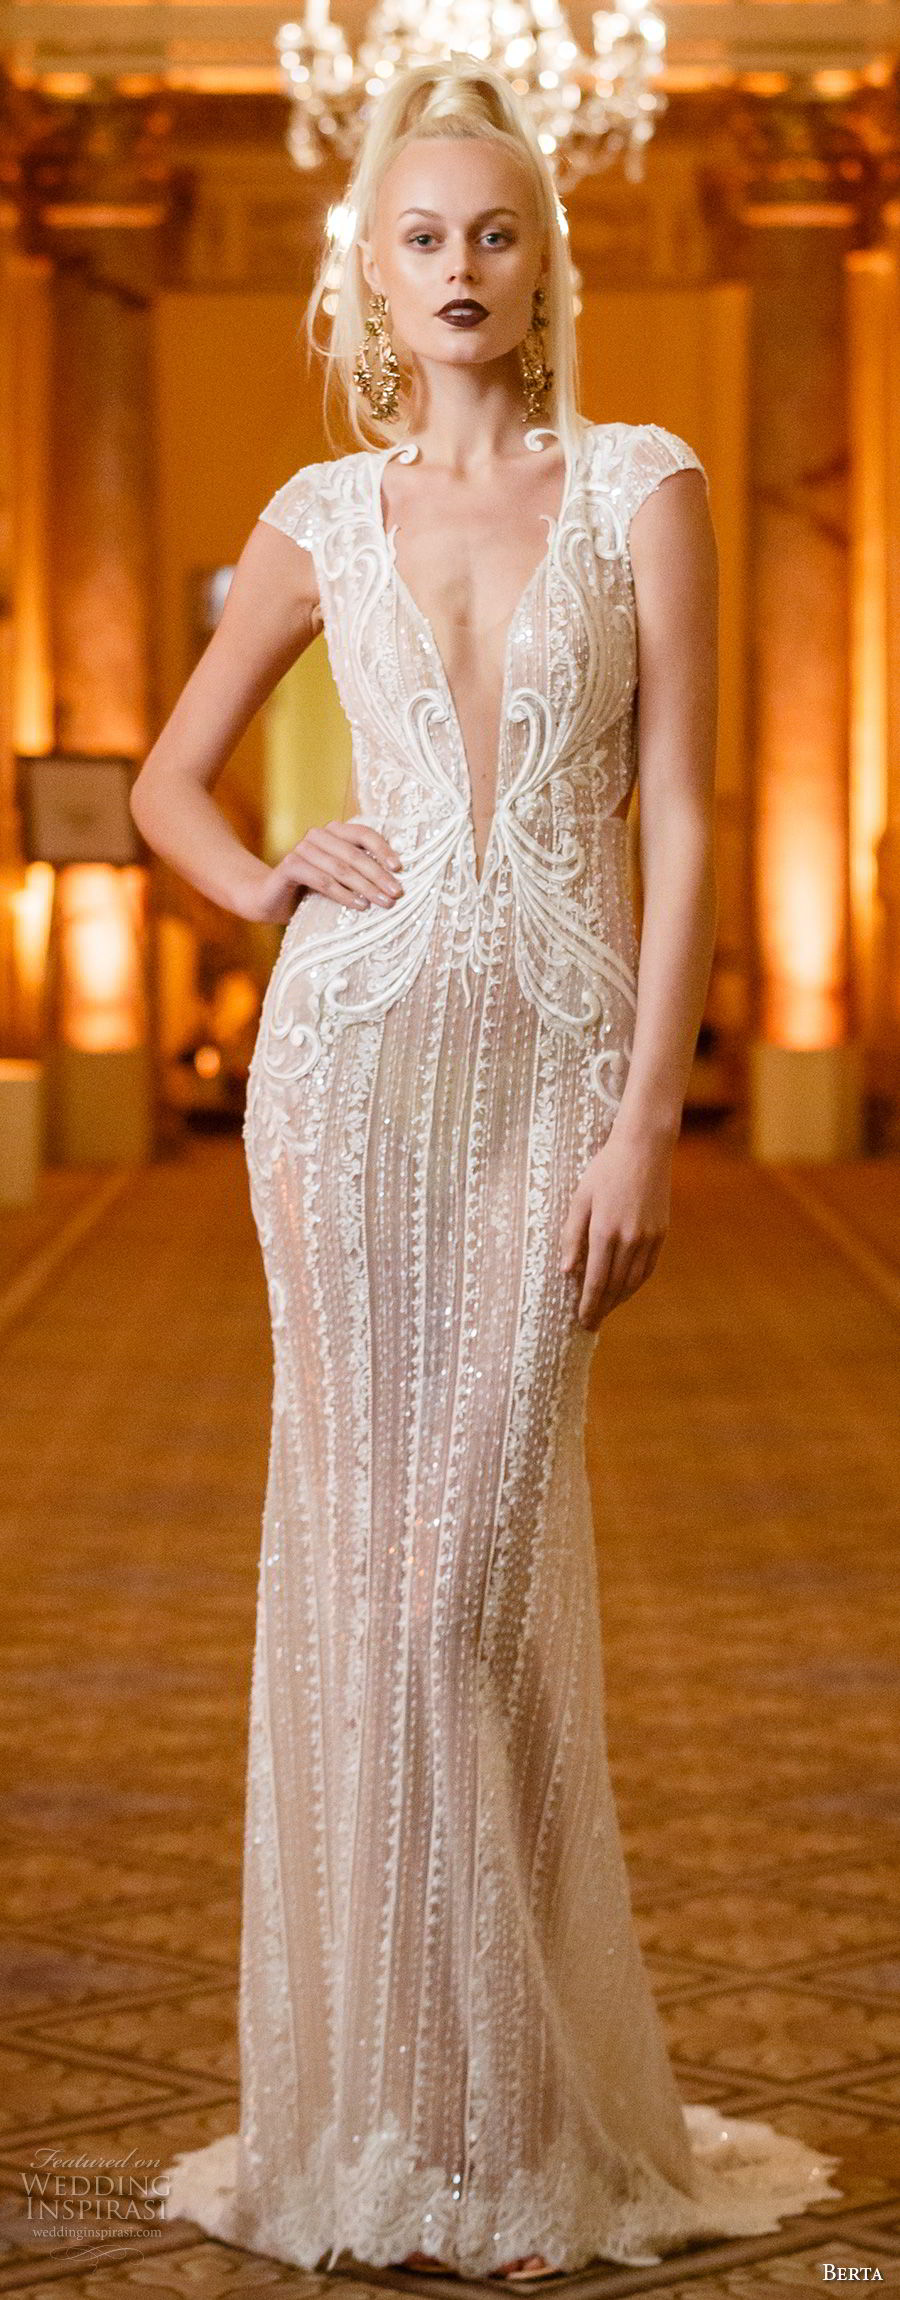 Berta spring 2018 wedding dresses new york bridal for Where to buy berta wedding dresses